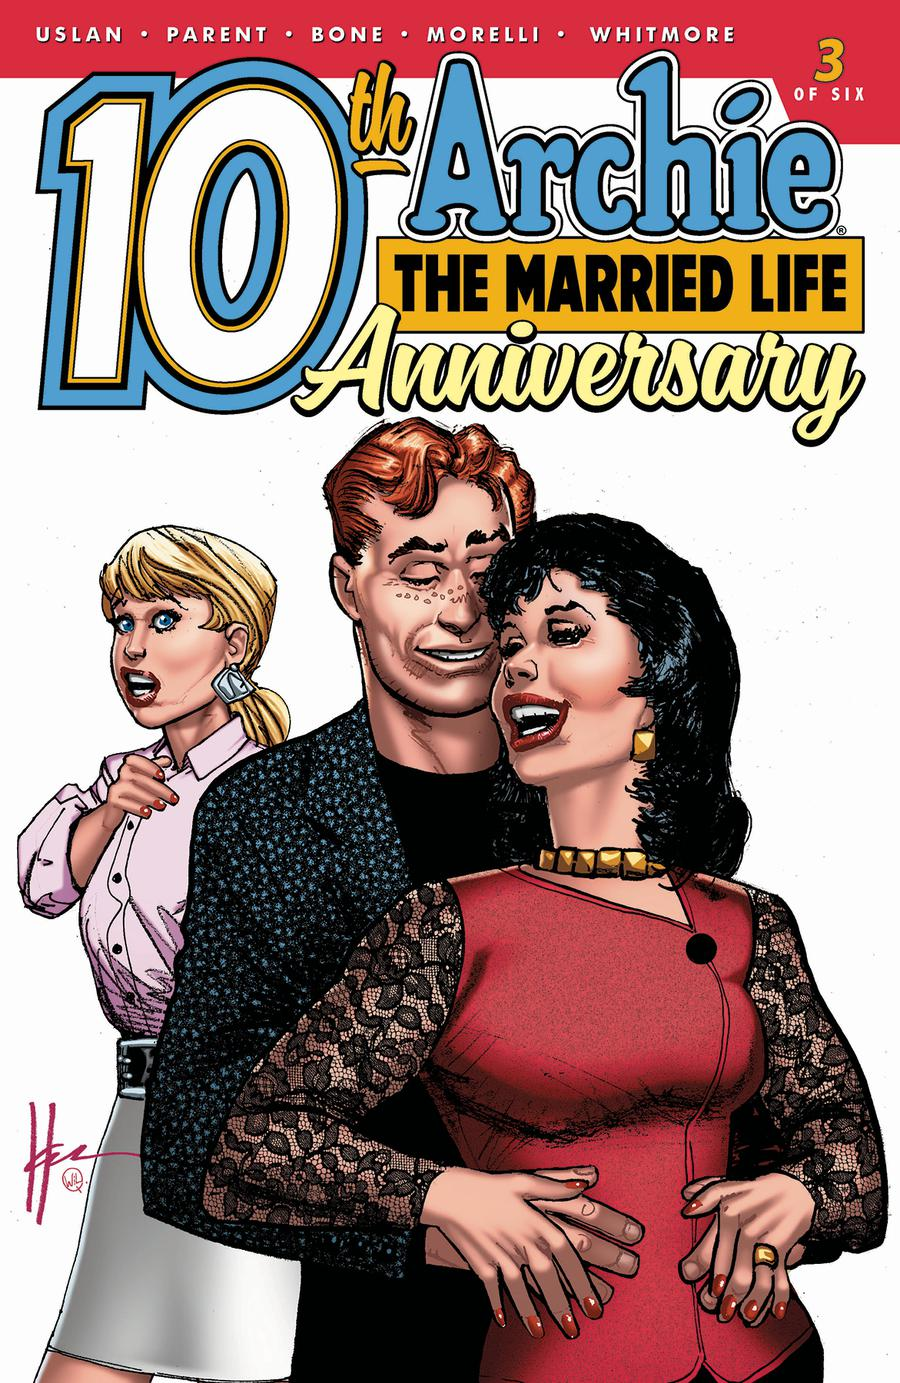 Archie The Married Life 10th Anniversary #3 Cover B Variant Howard Chaykin & Wil Quintana Cover